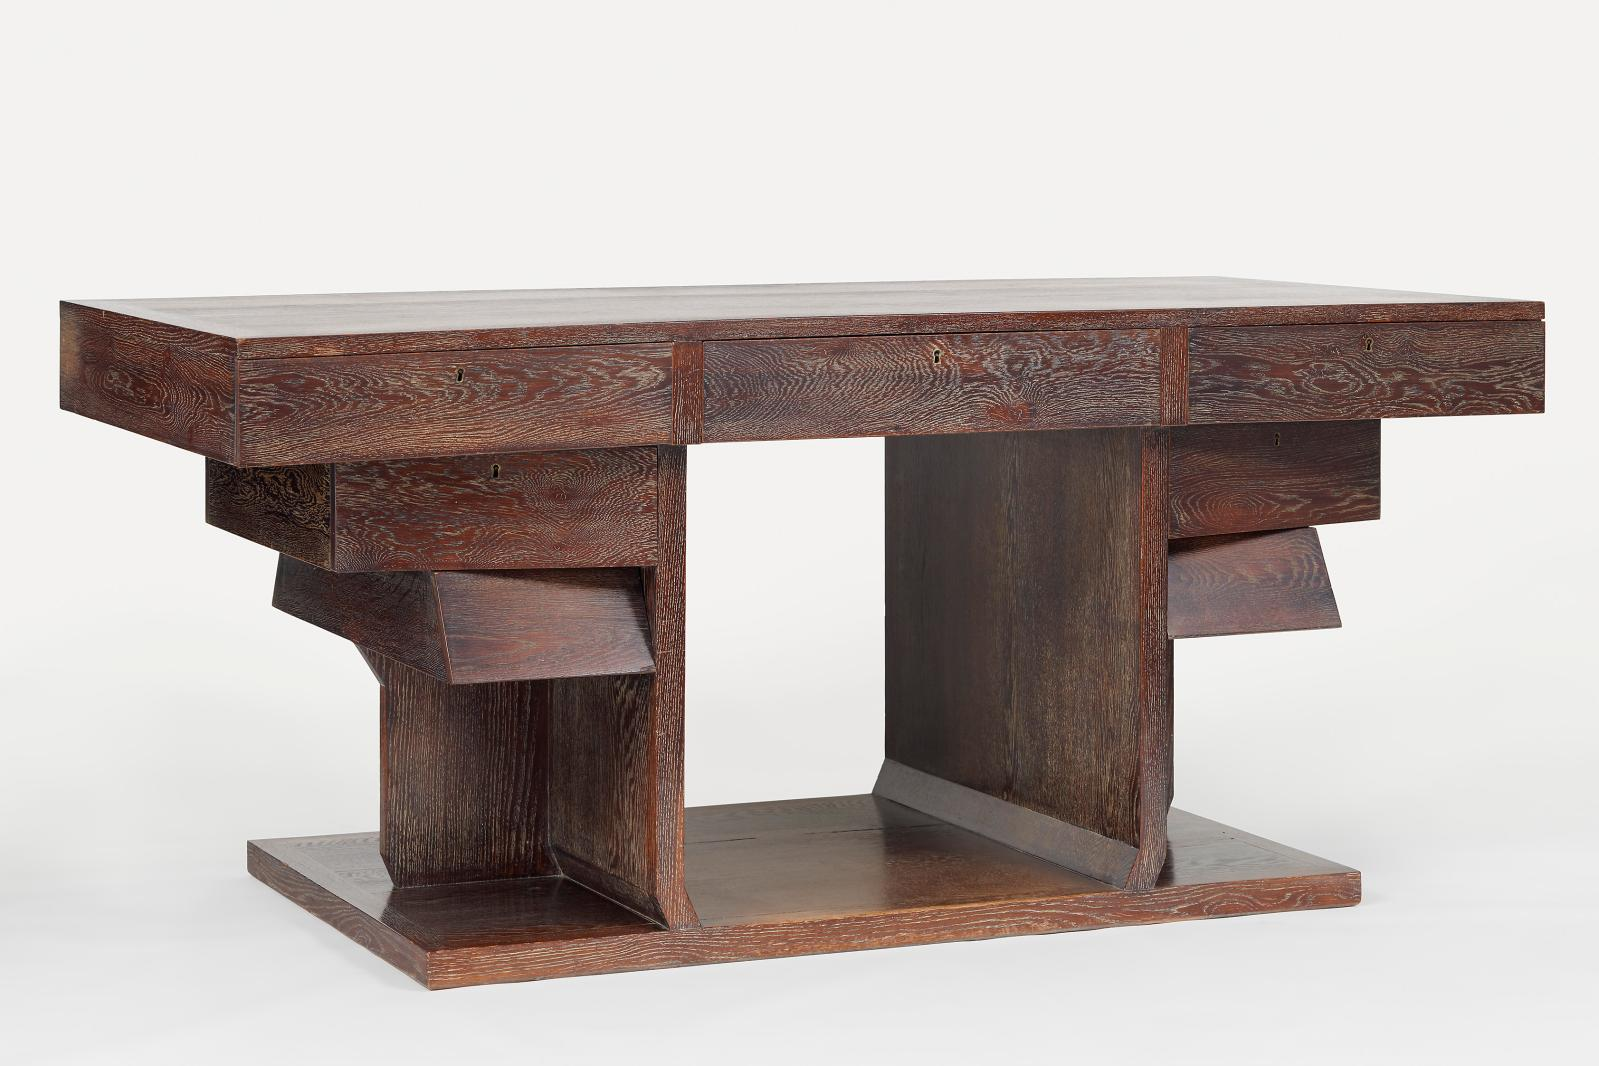 Limewashed oak desk with a thick top and asymmetrically placed drawers, c. 1927.Männedorf-Zurich, collection Bischofberger.